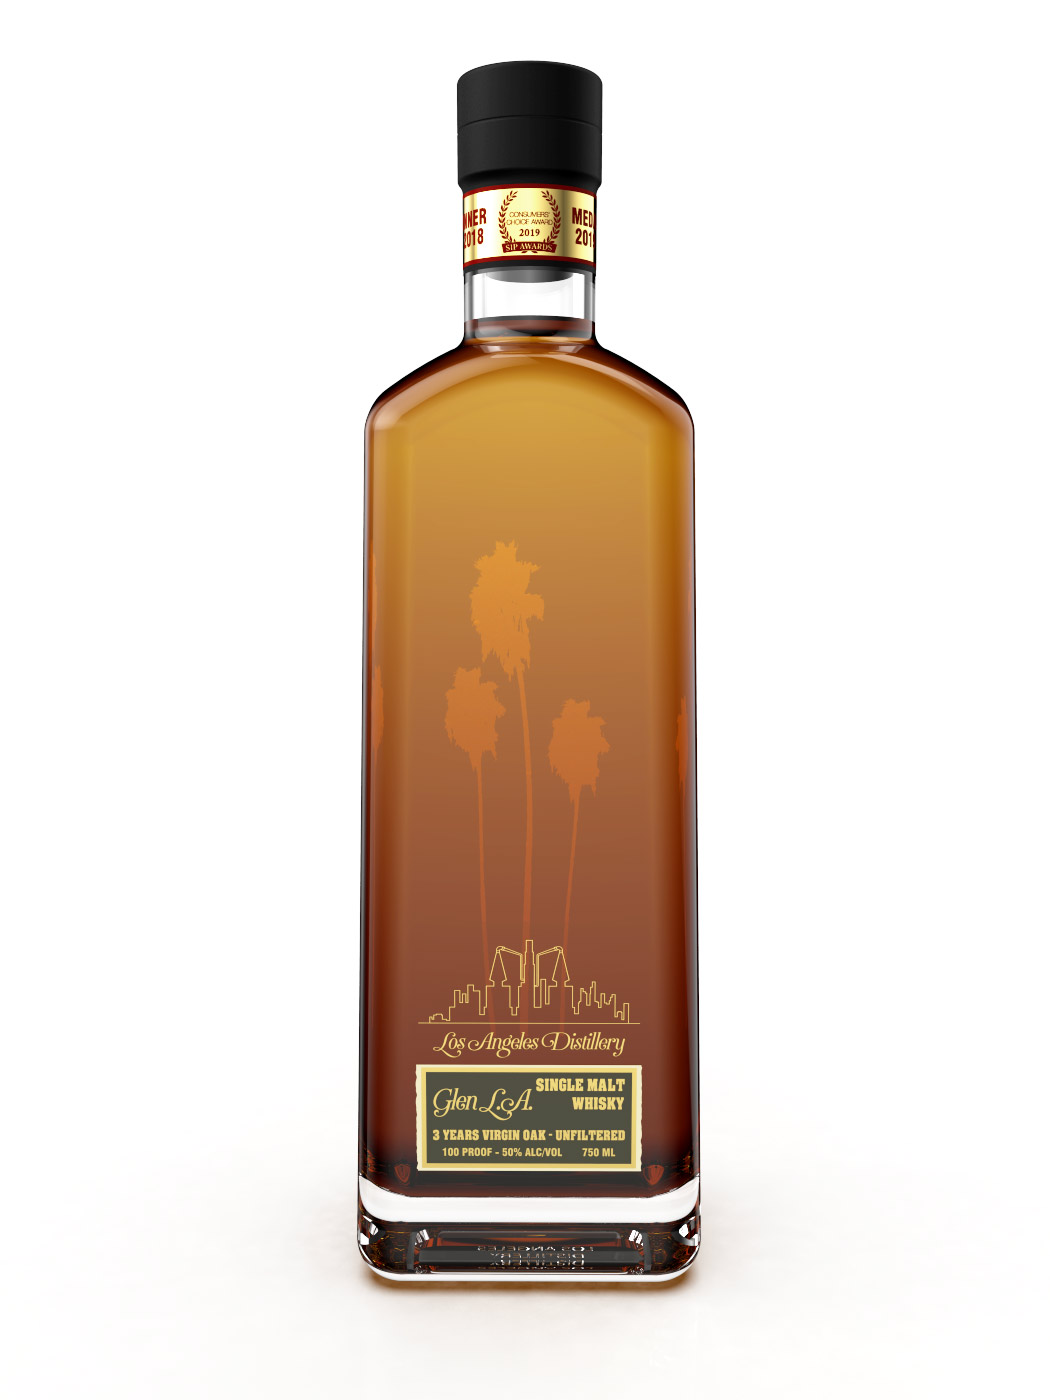 Los Angeles Distillery Glen LA Virgin Oak Single Malt Whisky